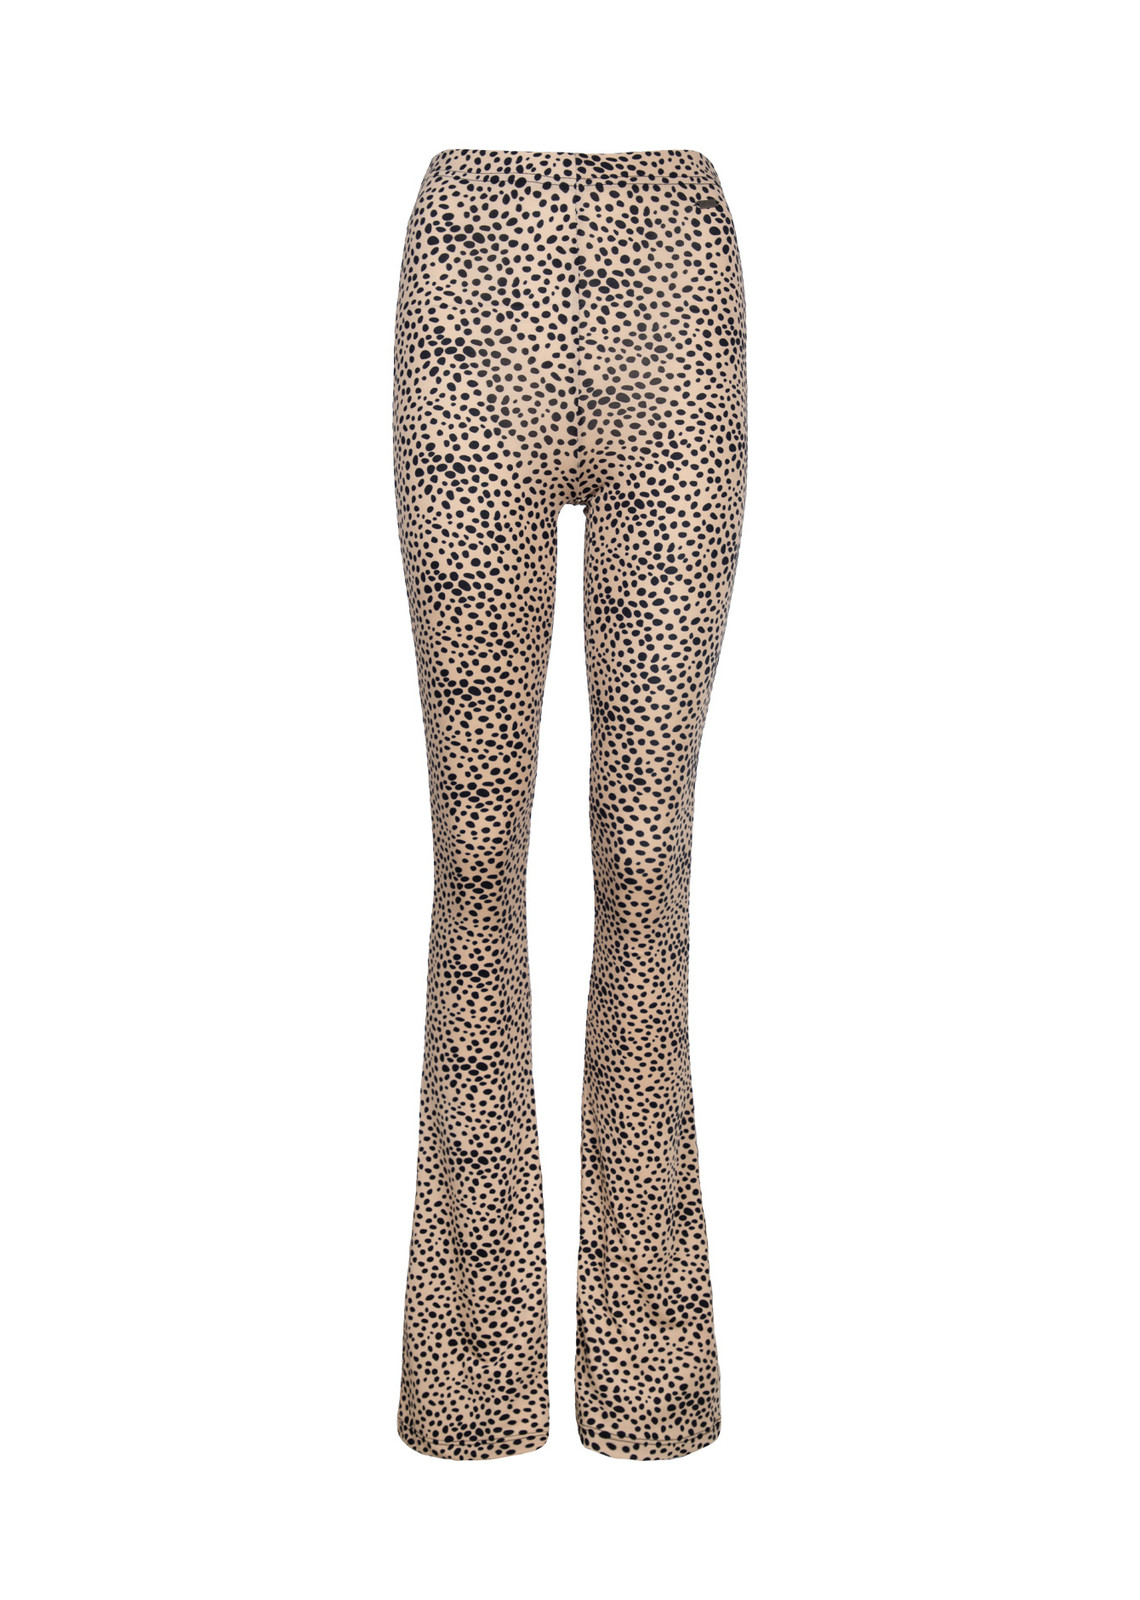 Cheetah flare pants beige